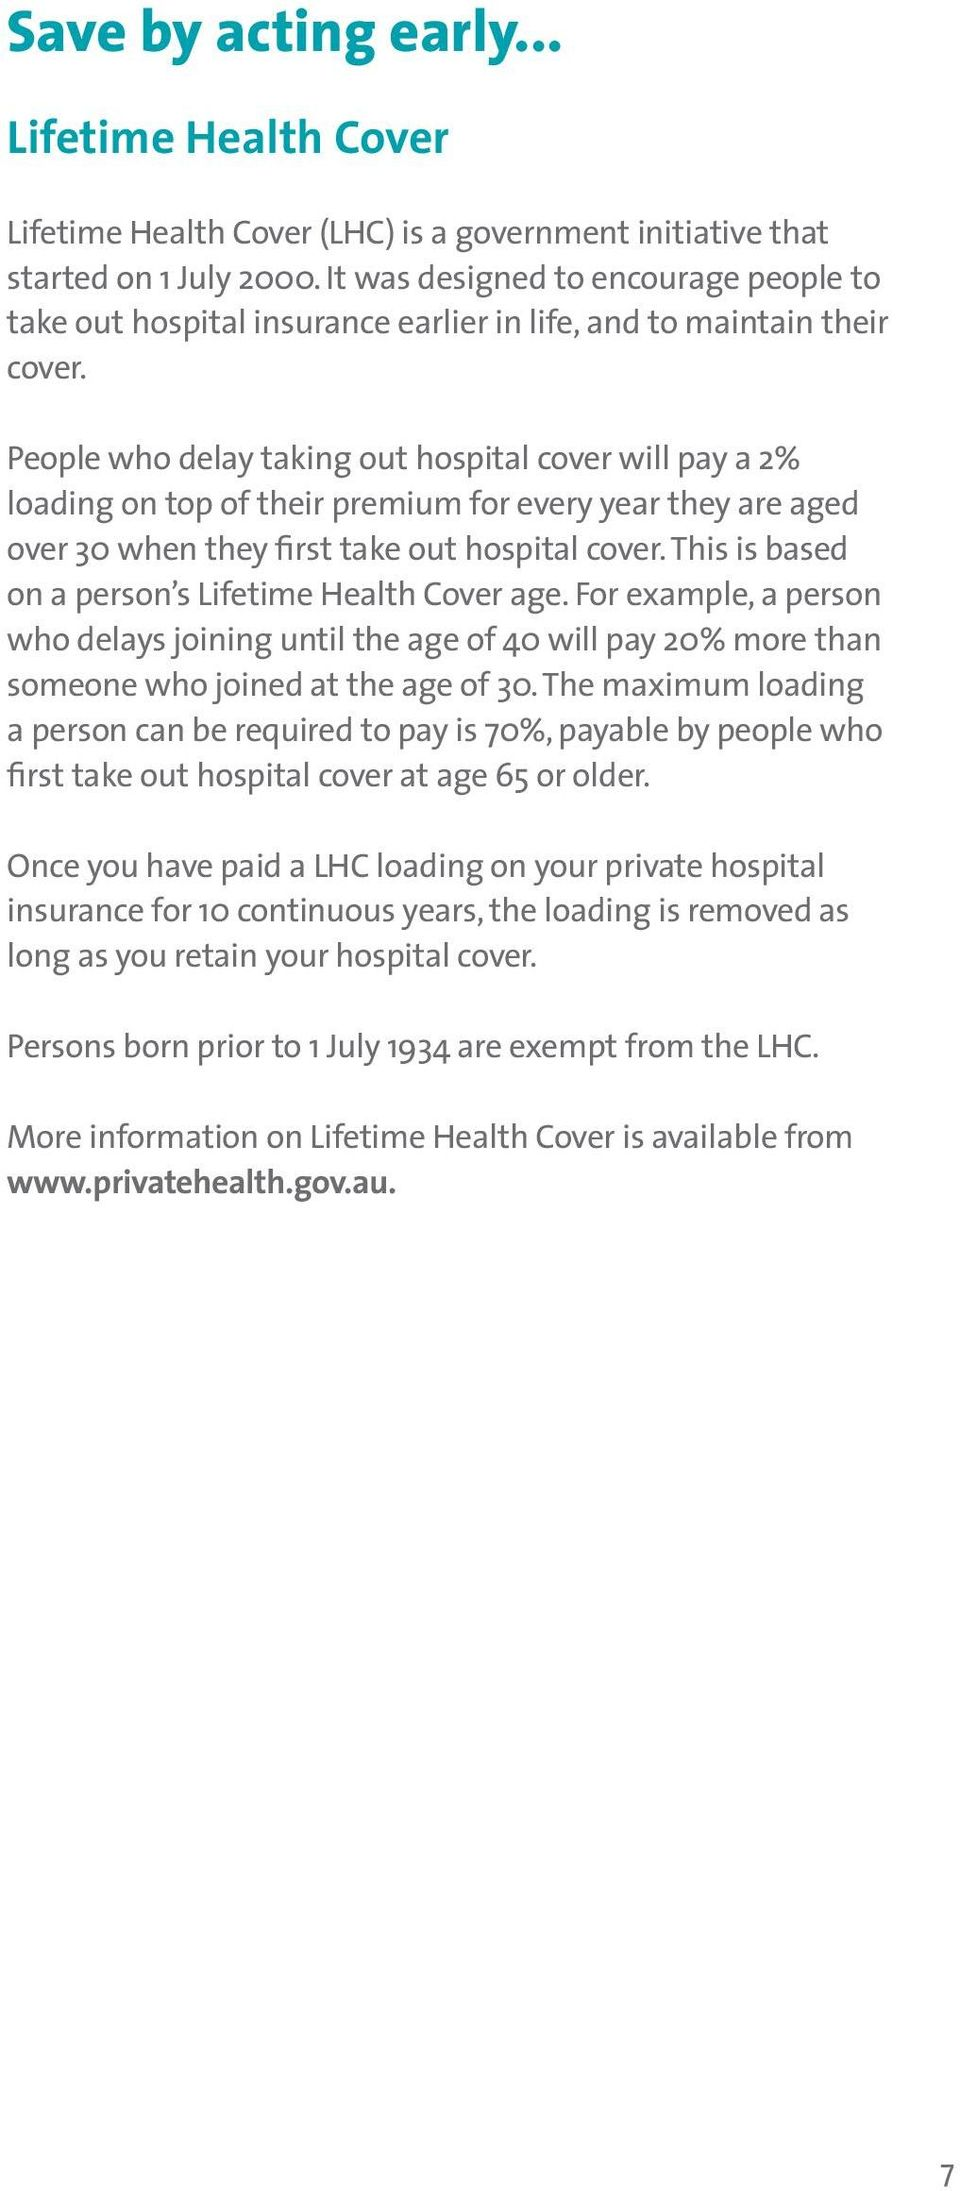 People who delay taking out hospital cover will pay a 2% loading on top of their premium for every year they are aged over 30 when they first take out hospital cover.